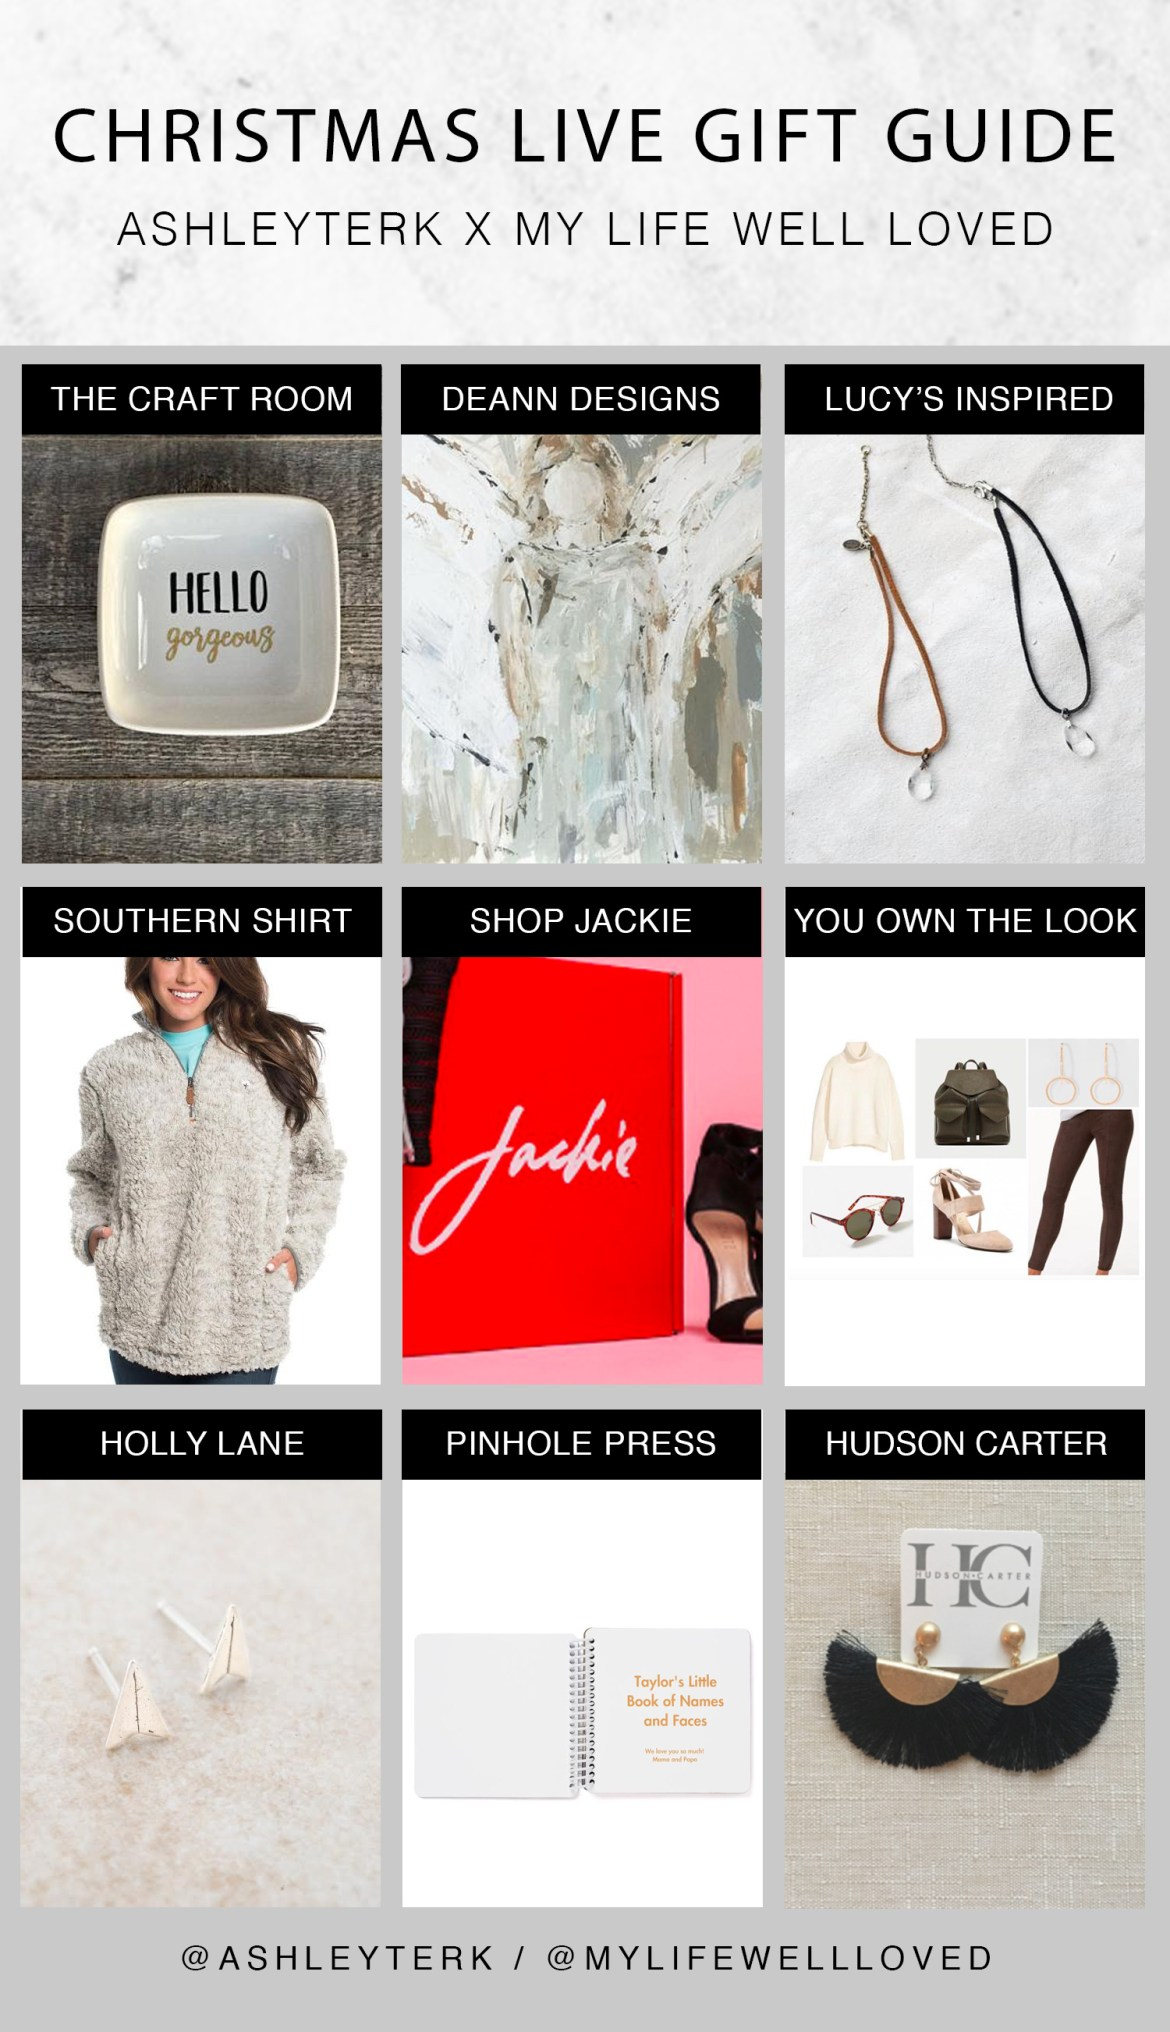 Ashley Terk // My Life Well Loved // Christmas Live // Gift Guide // Lucy's Inspired // Southern Shirt // Shop Jackie // Holly Lane // The Craft Room // Deann Designs // Pinhole Press - Christmas Live Gift Guide Sneak Peek featured by popular Los Angeles life and style blogger, Ashley Hodges